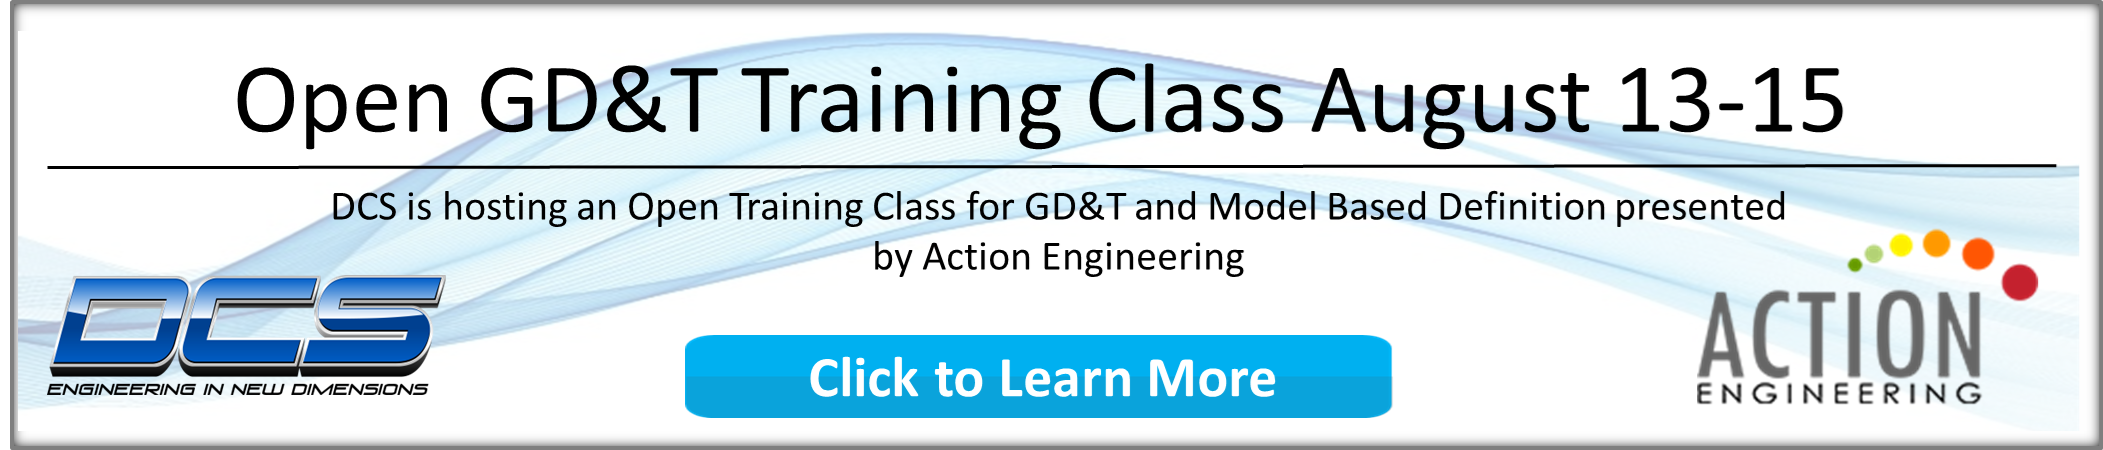 Upcoming GD&T course presented by Action Engineering